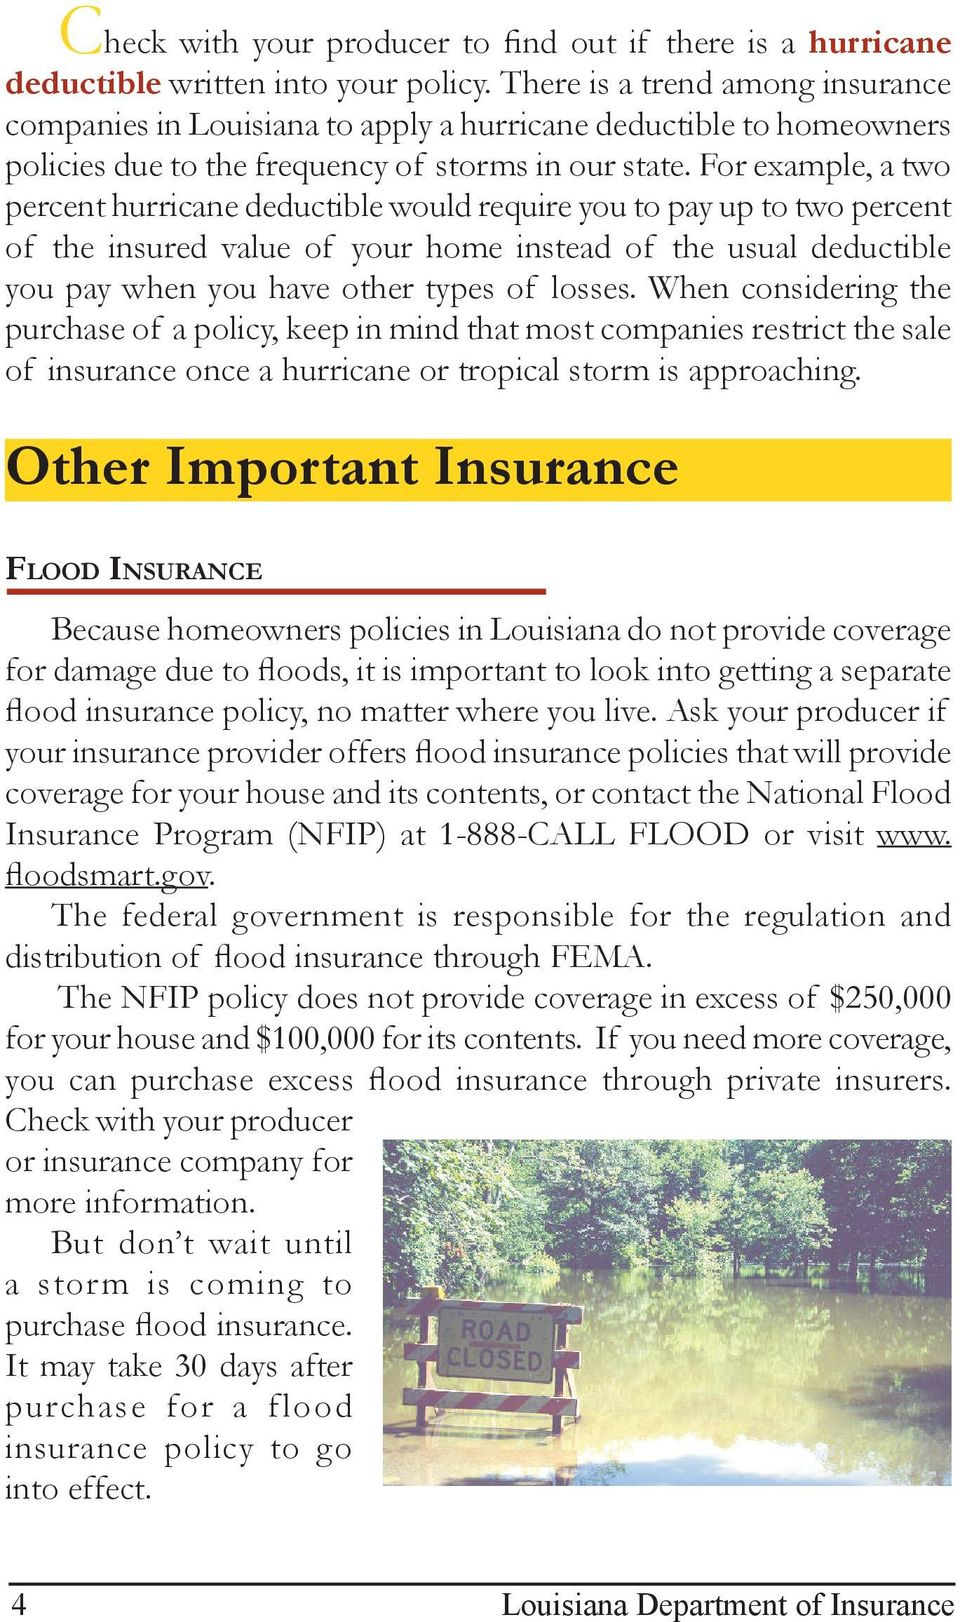 For example, a two percent hurricane deductible would require you to pay up to two percent of the insured value of your home instead of the usual deductible you pay when you have other types of